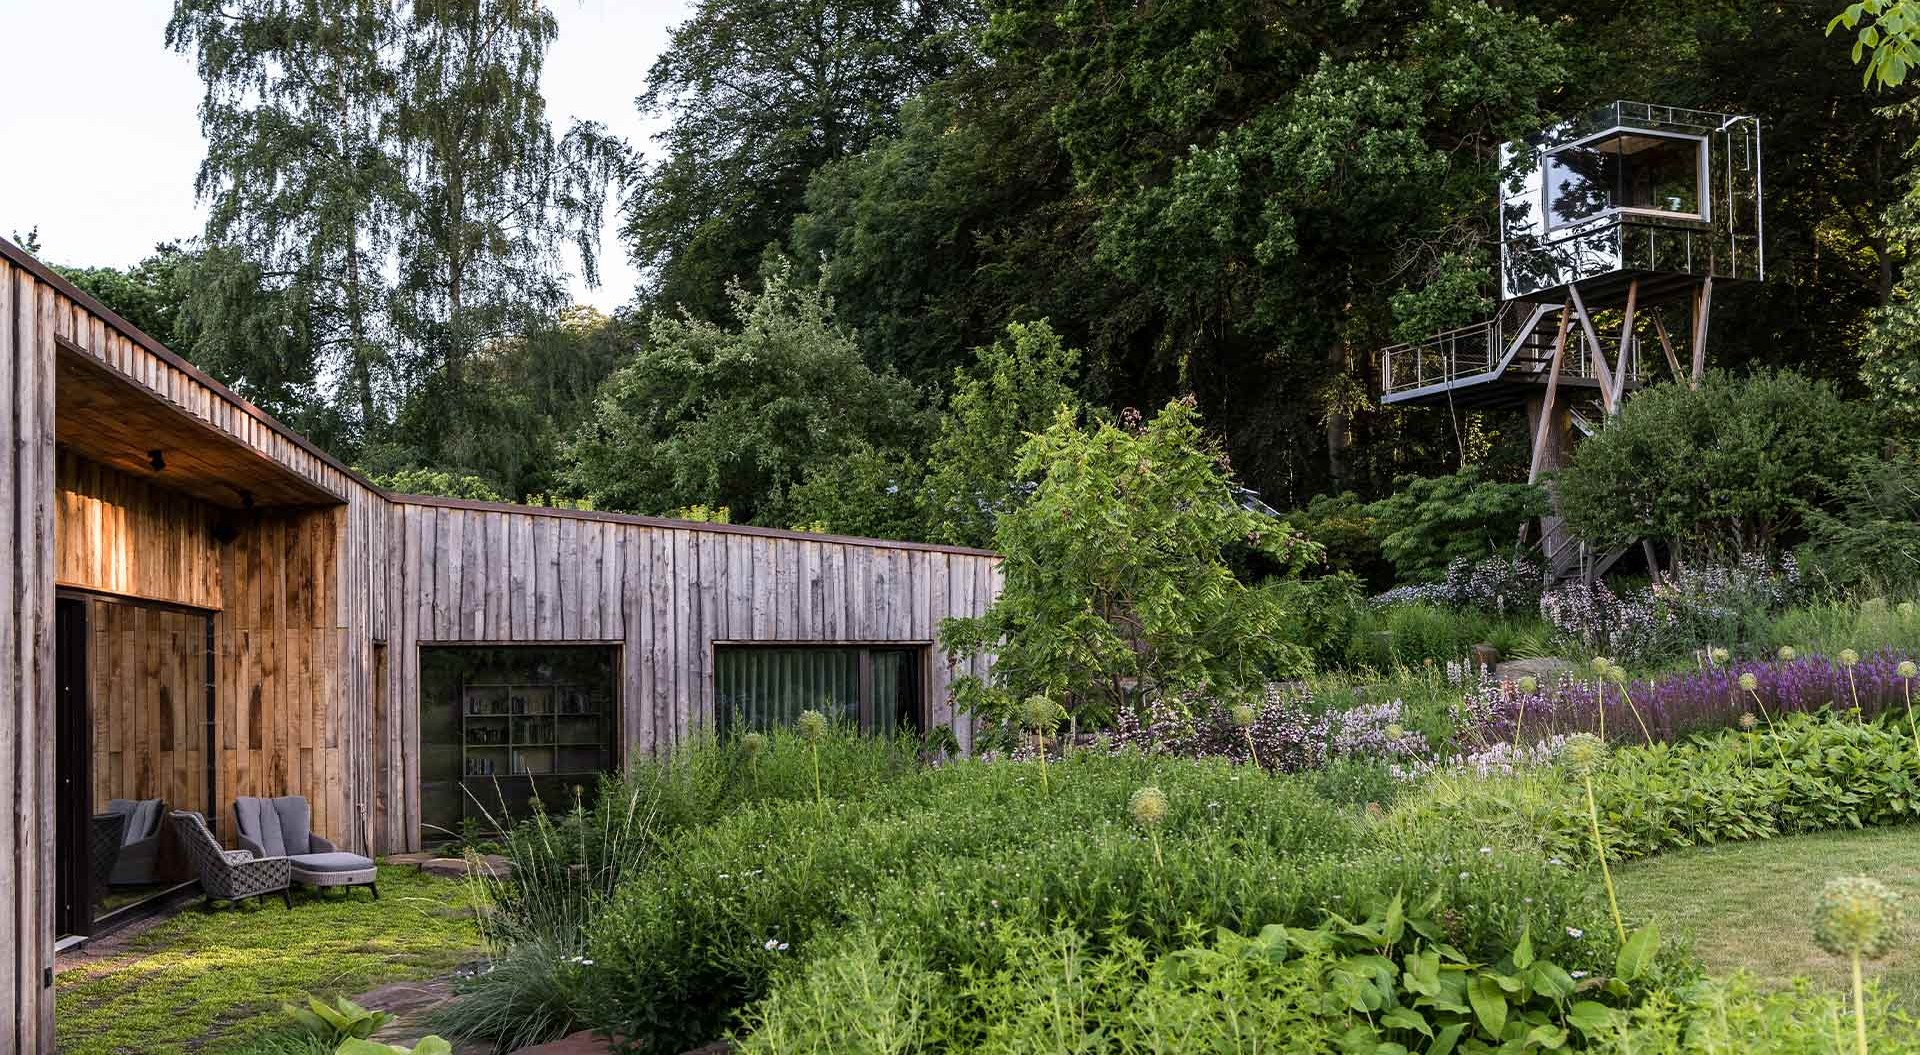 Flowers, plants, shrubs and trees provide for a varied garden